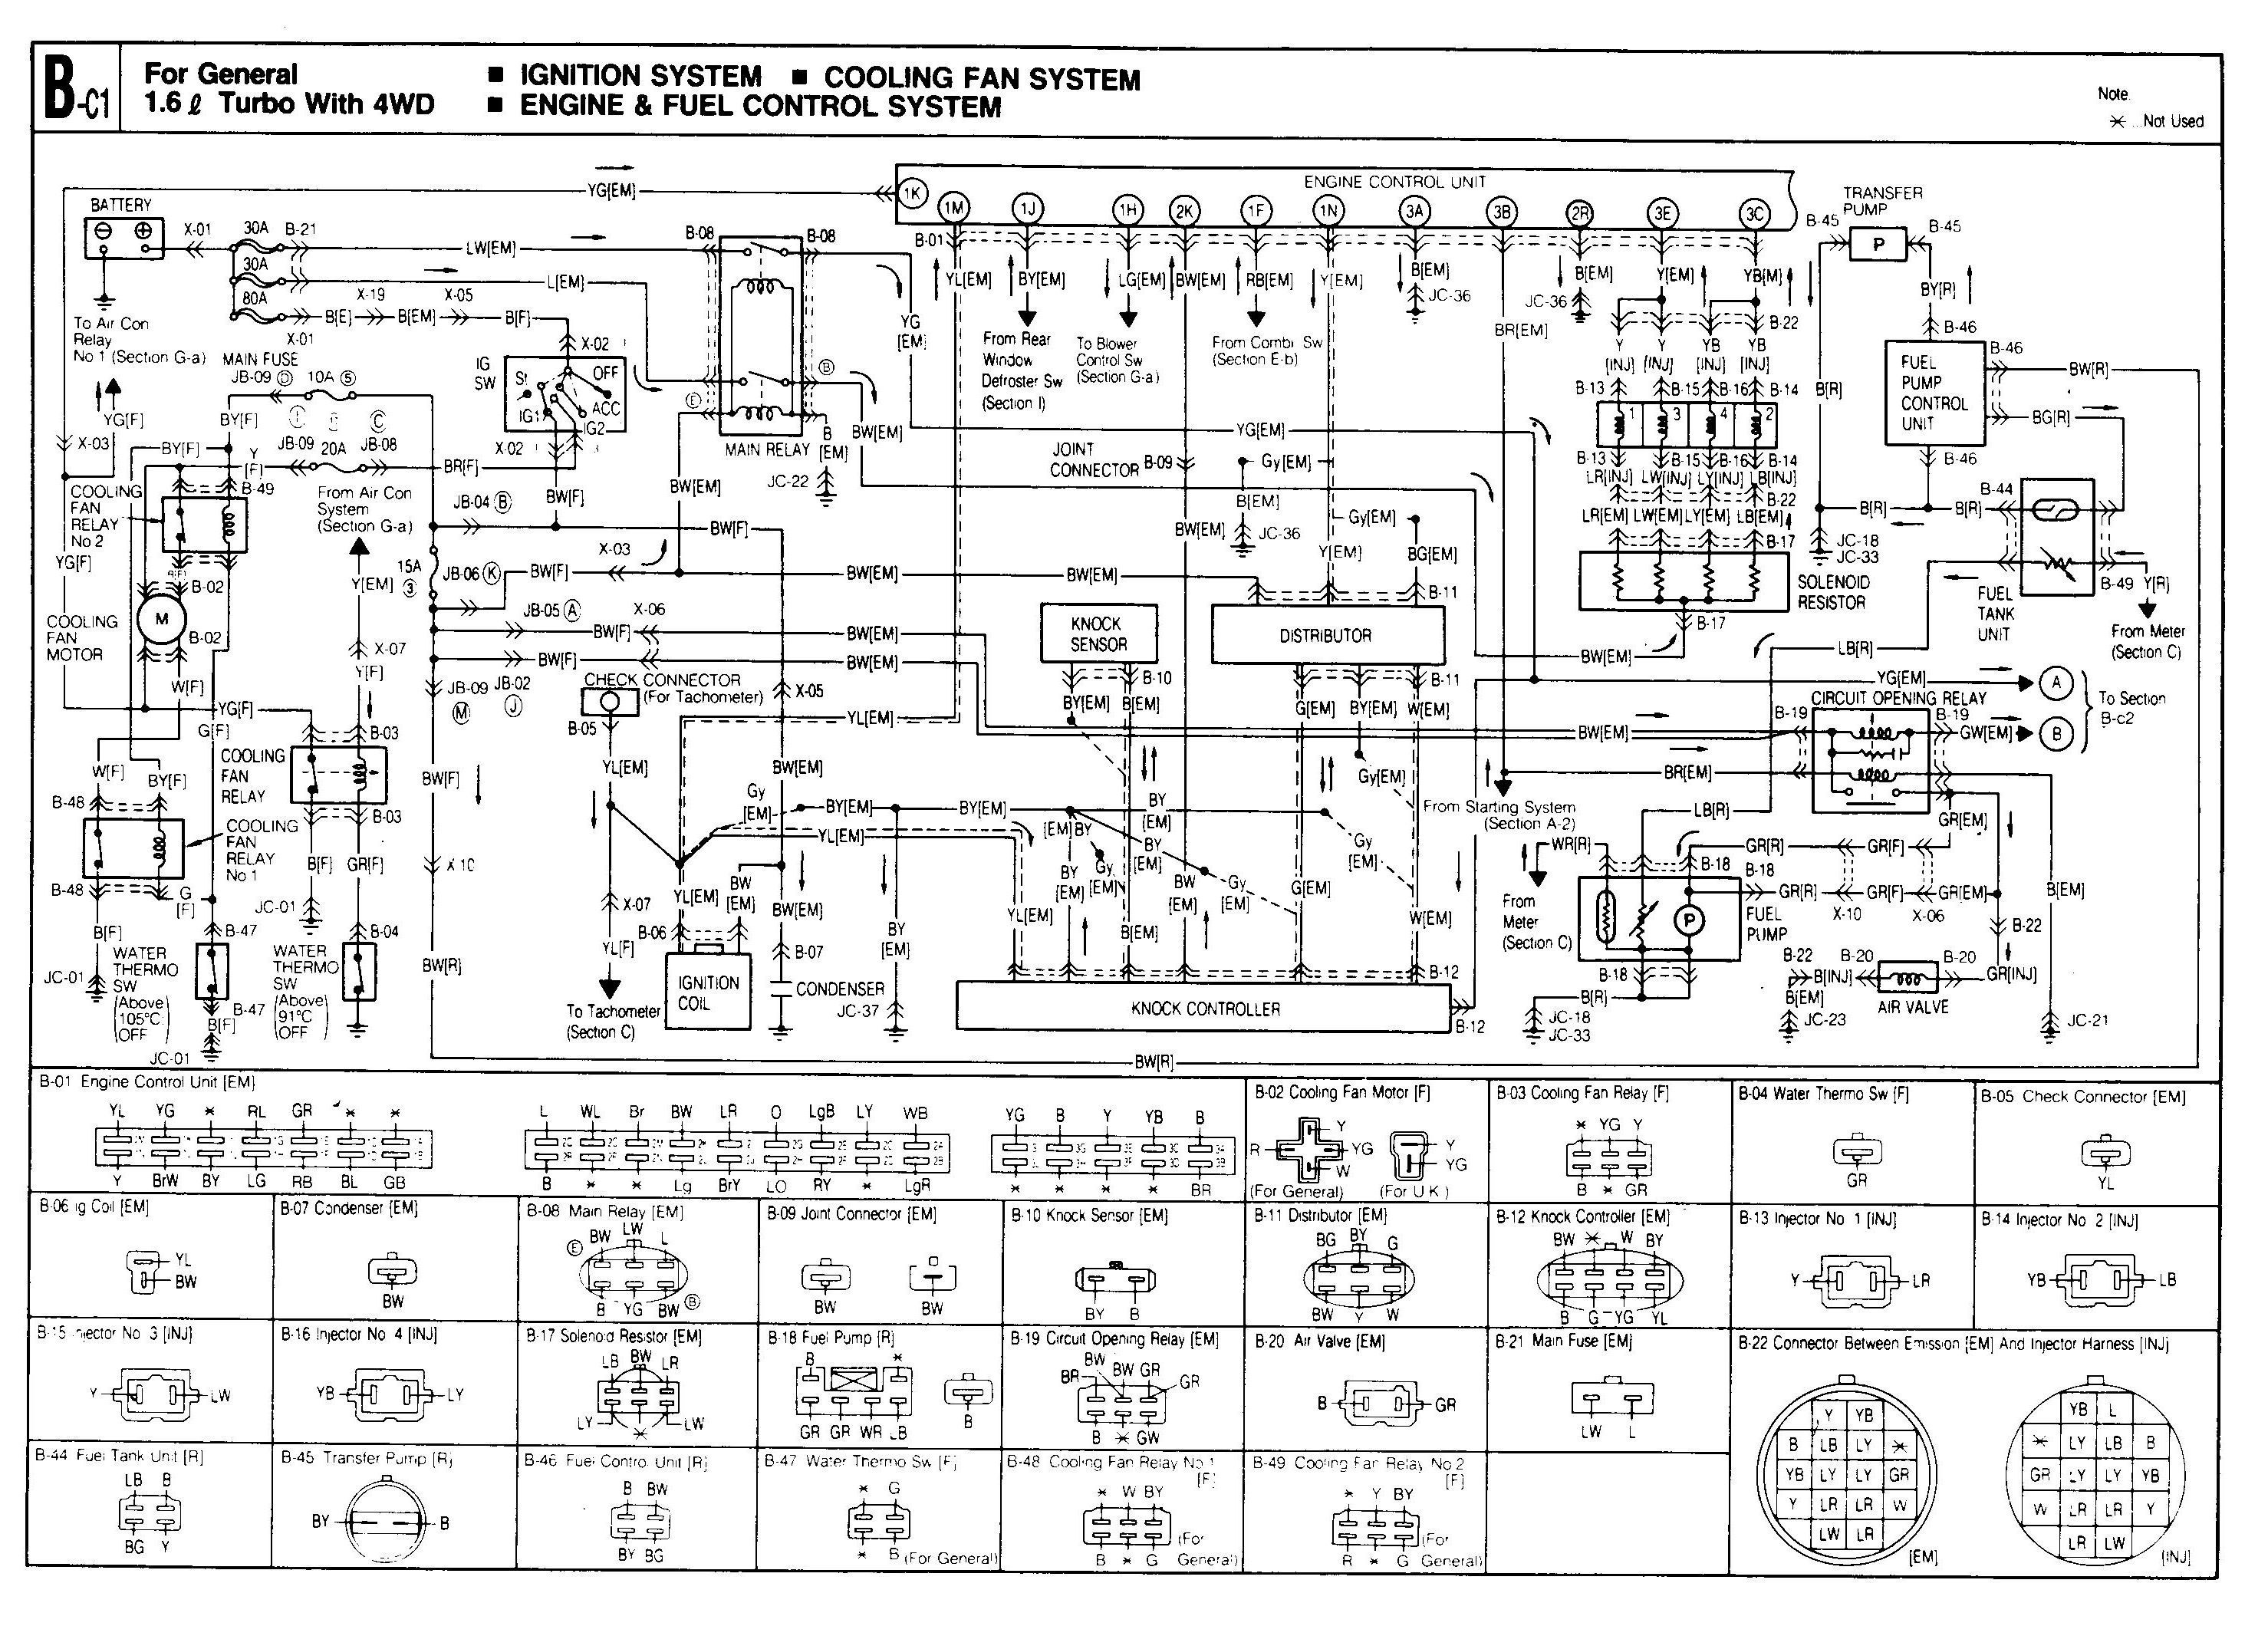 2000 Mazda Protege Engine Diagram Mazda Protege Hvac System Wiring Diagram Worksheet and Wiring